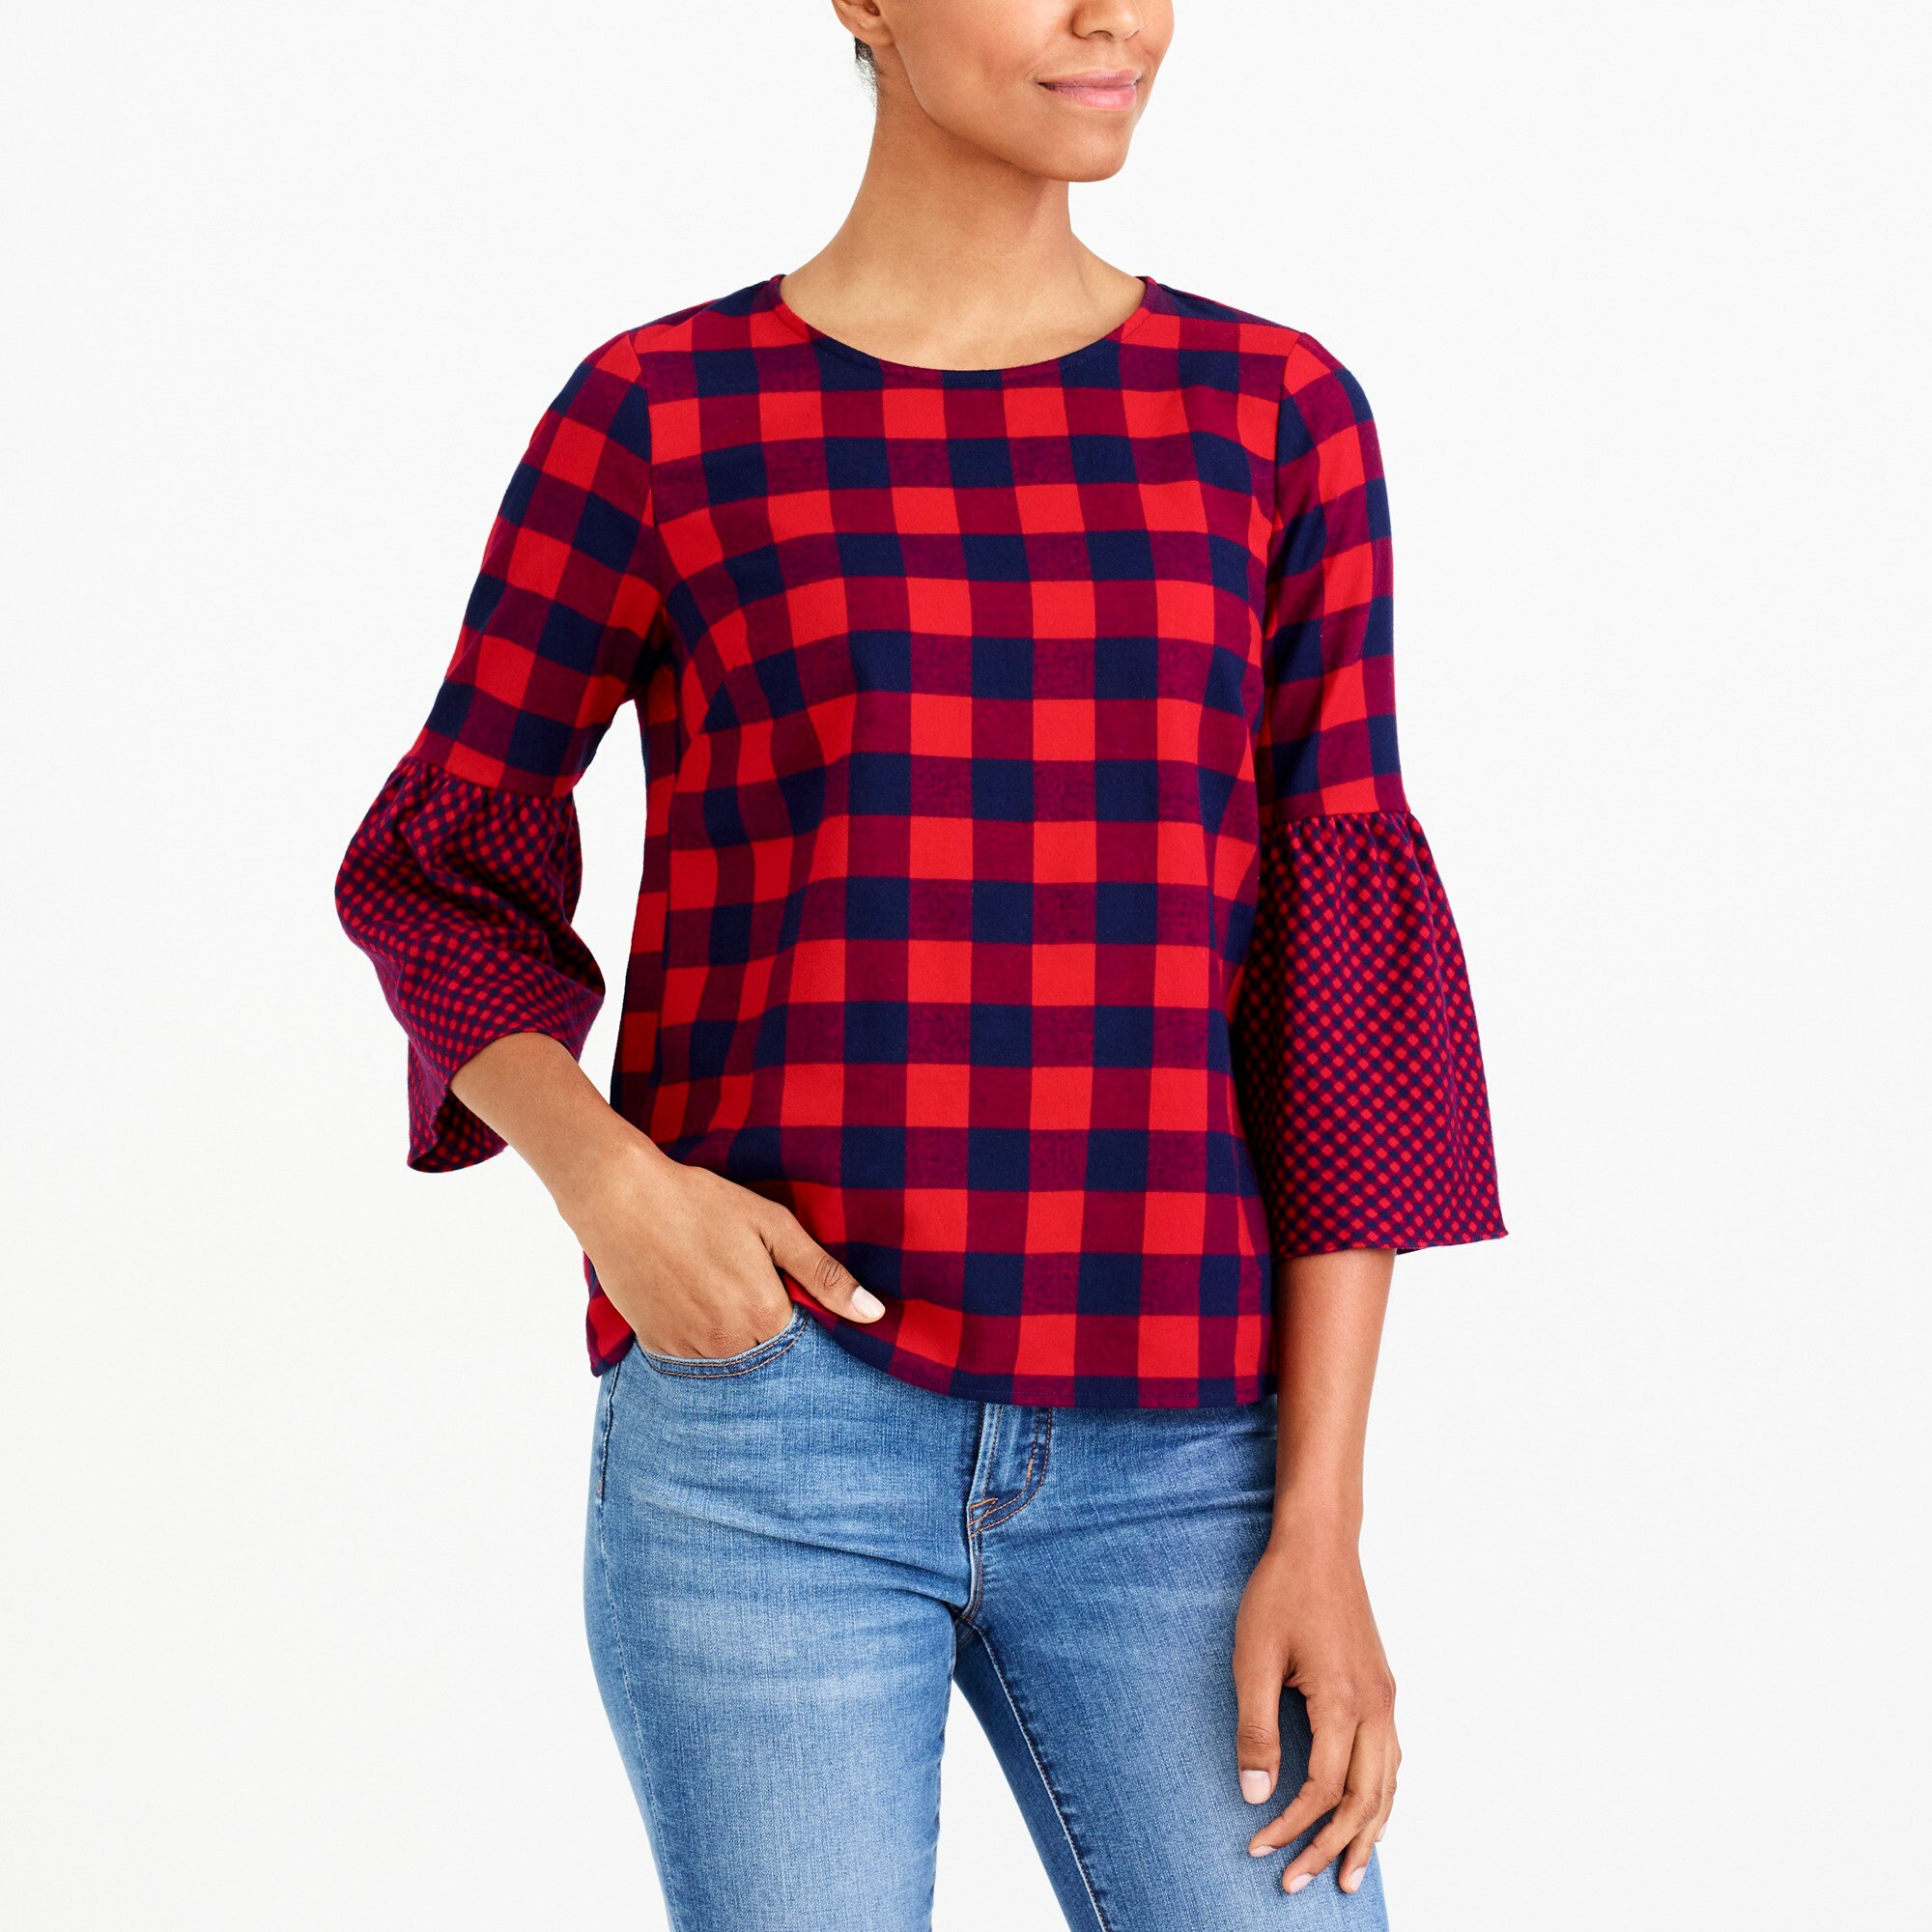 Image 1 for Flannel bell-sleeve top